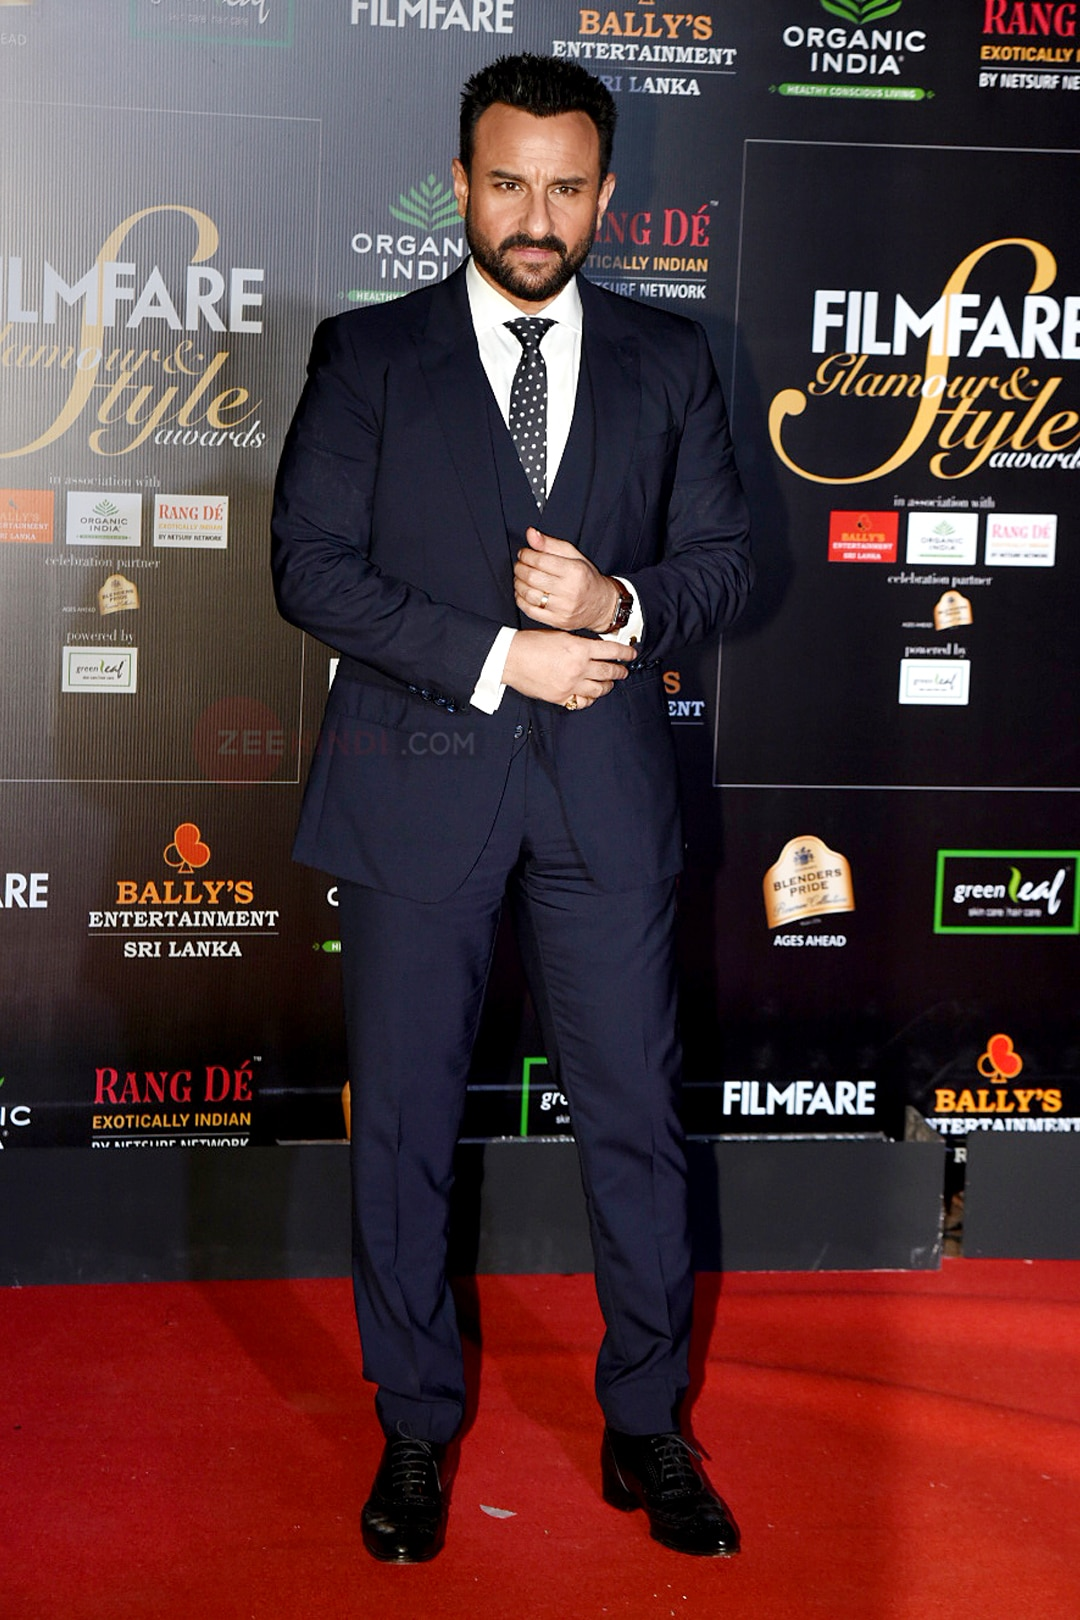 Saif Ali Khan, Anushka Sharma, Kiara, Kriti, Malaika in 6th edition of Filmfare Glamour & Style Awards